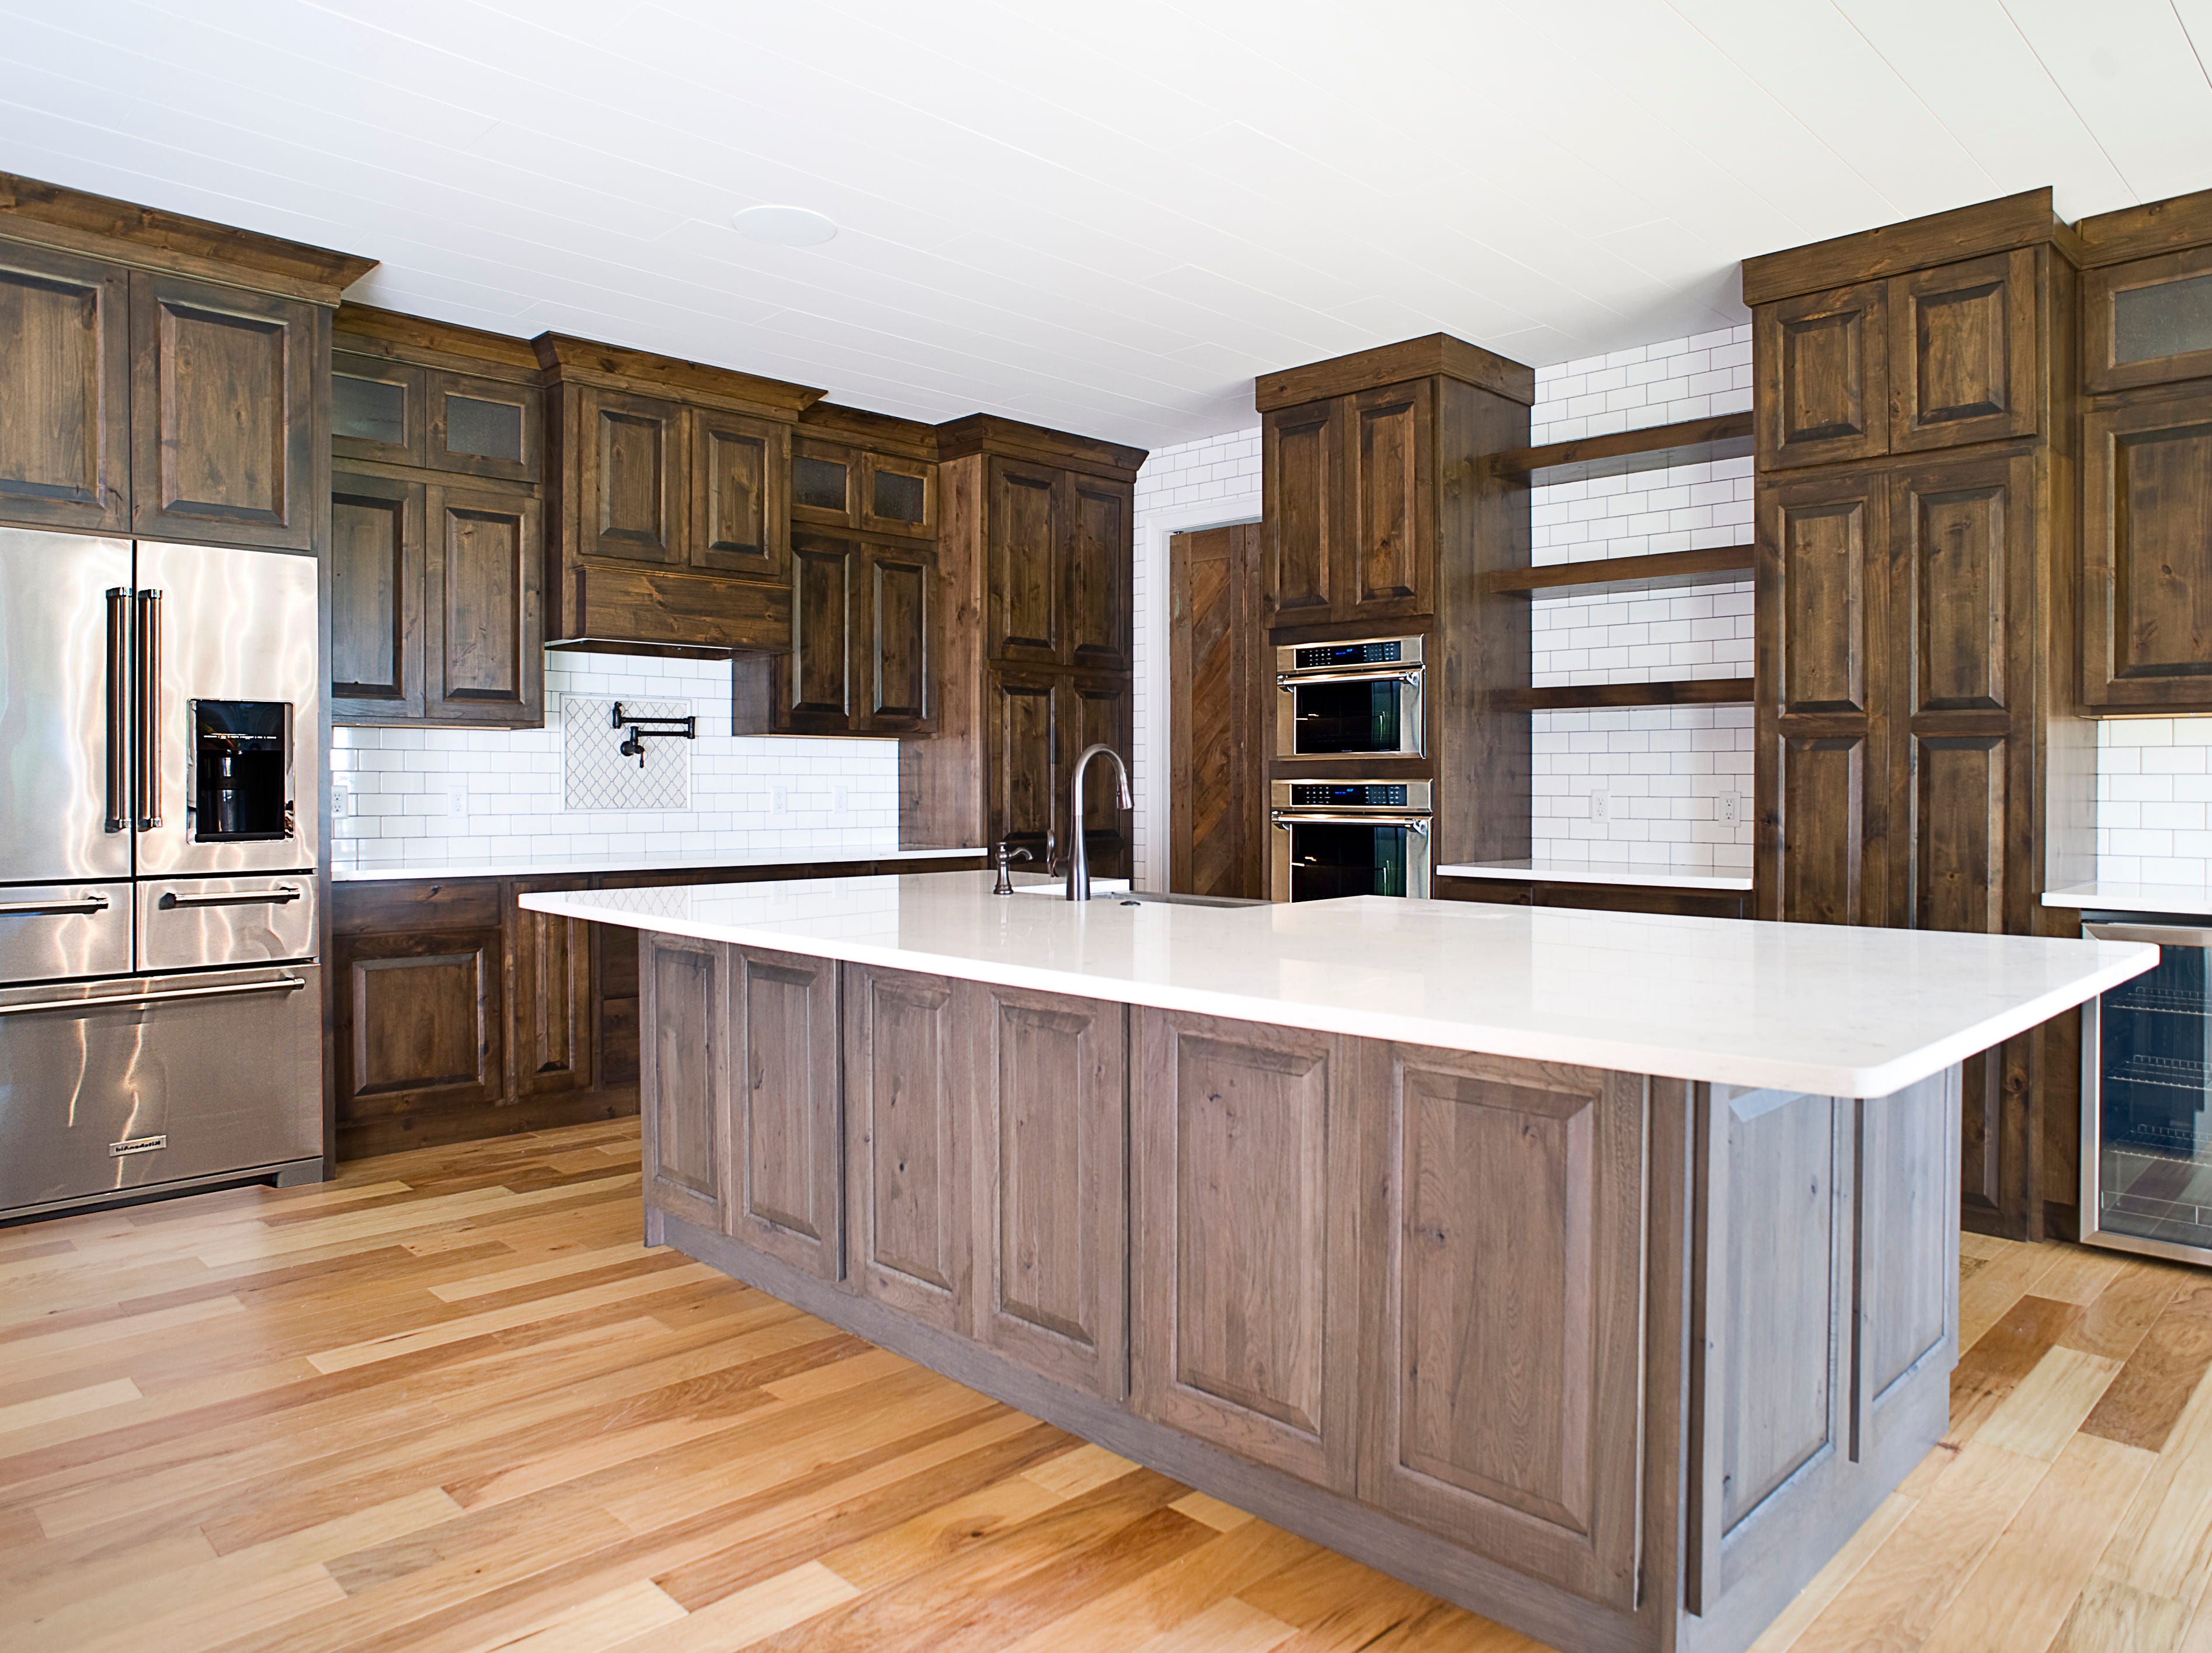 The Home Builders Association of the Sioux Empire is hosting tours of 21 Sioux Falls properties Saturday and Sunday.